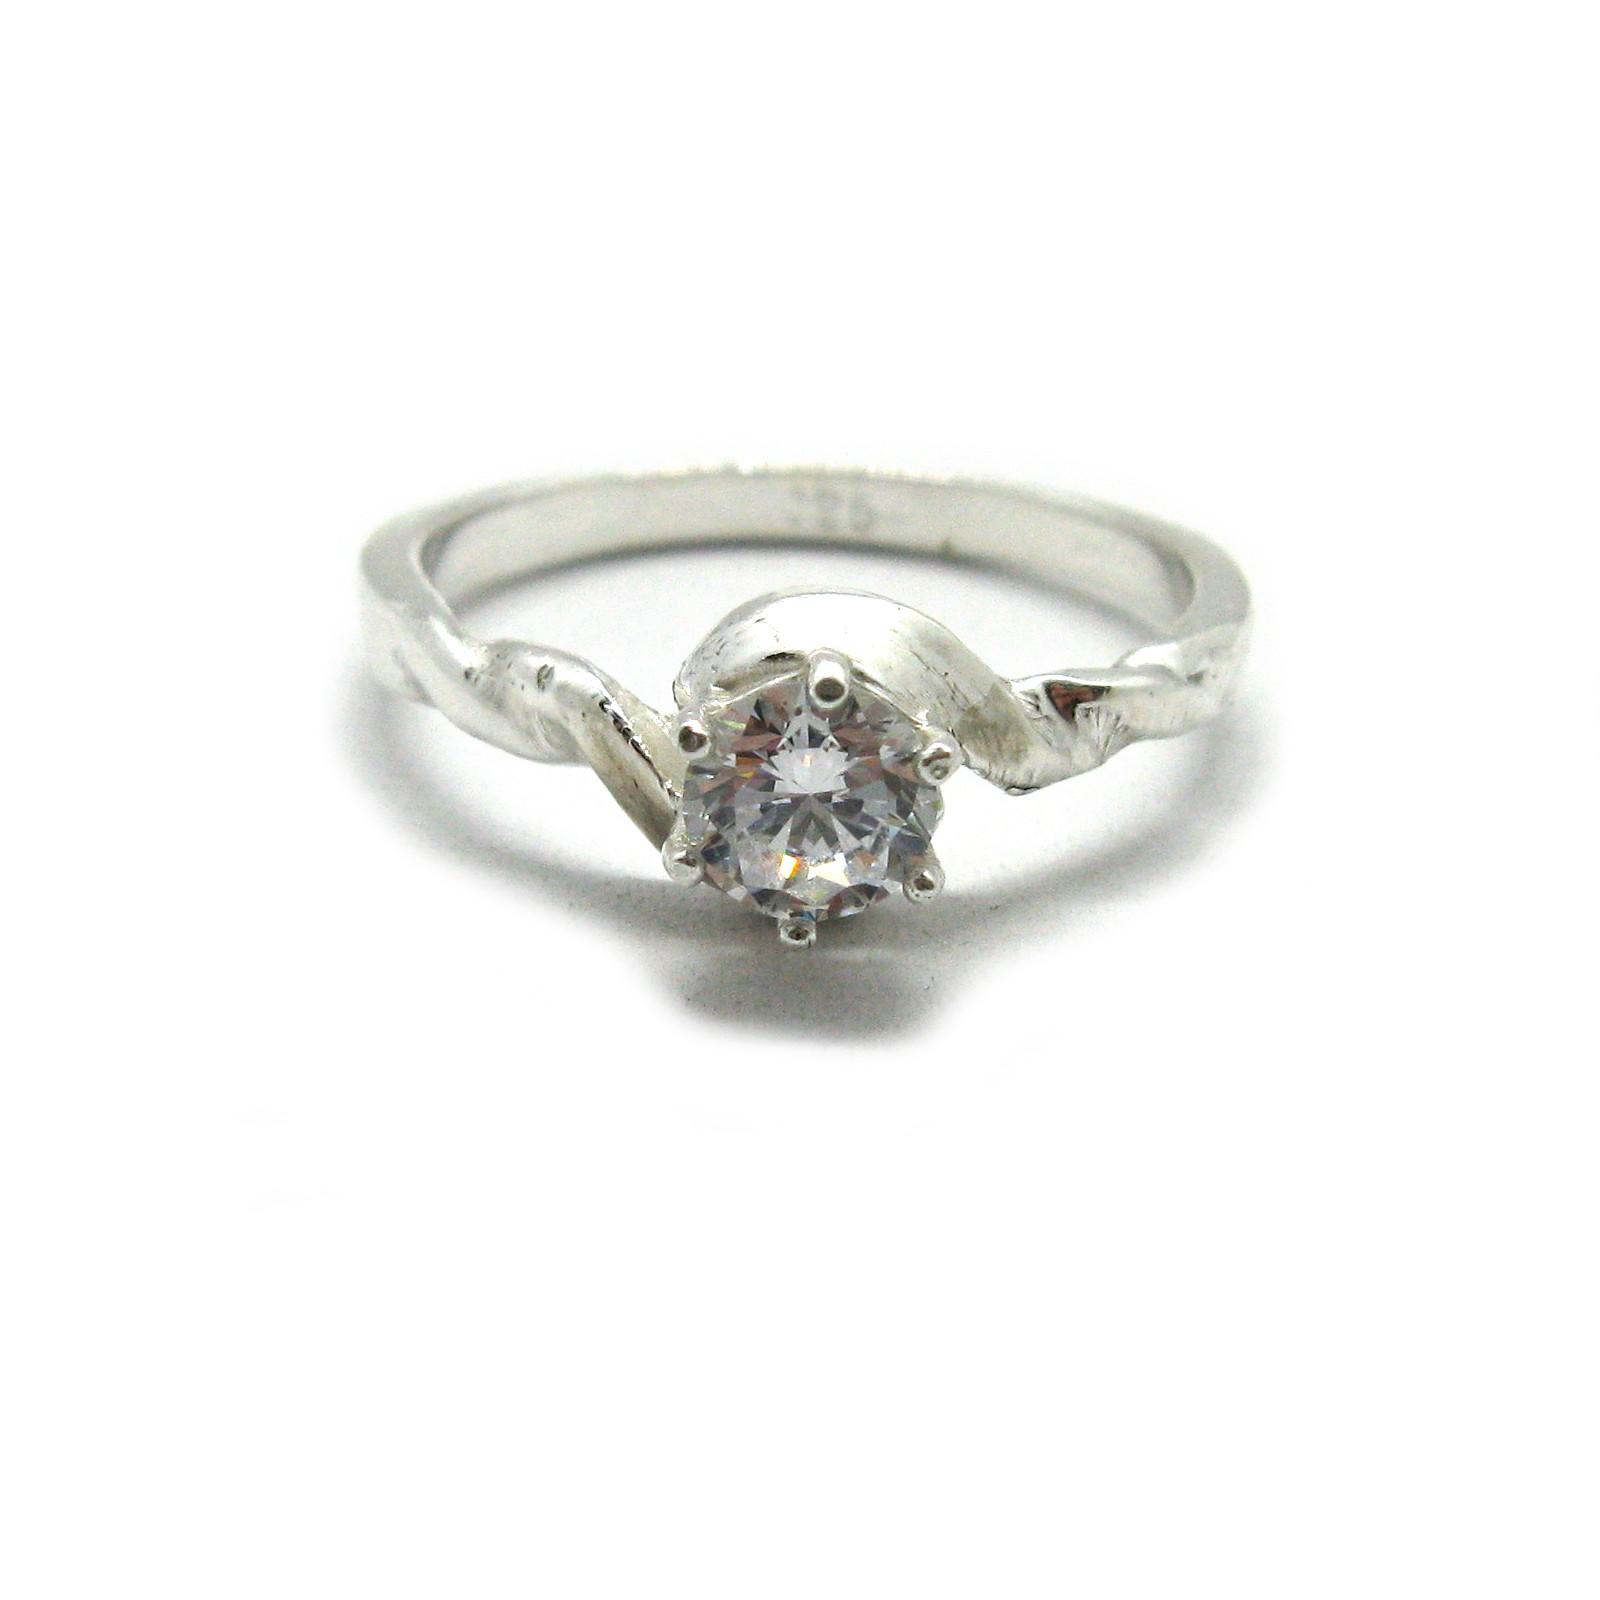 Silver ring - R001938